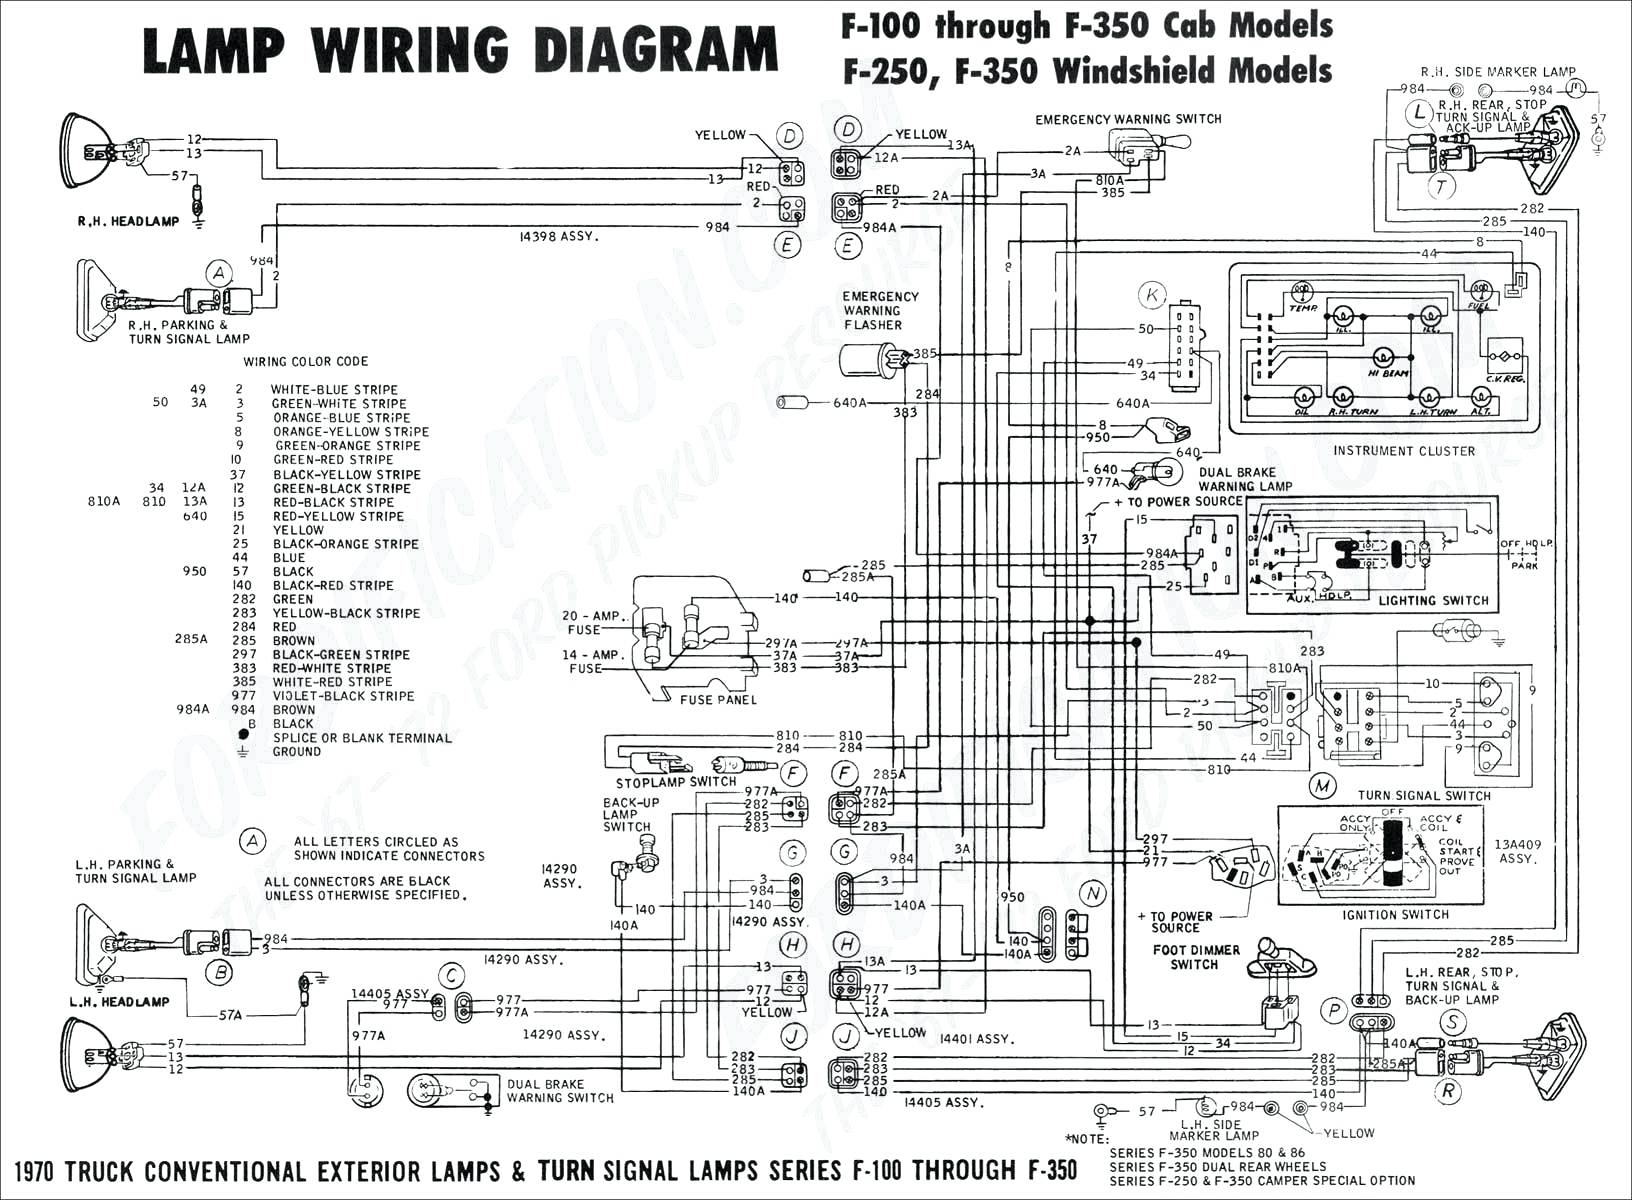 1999 Ford F250 Trailer Wiring Diagram Collection